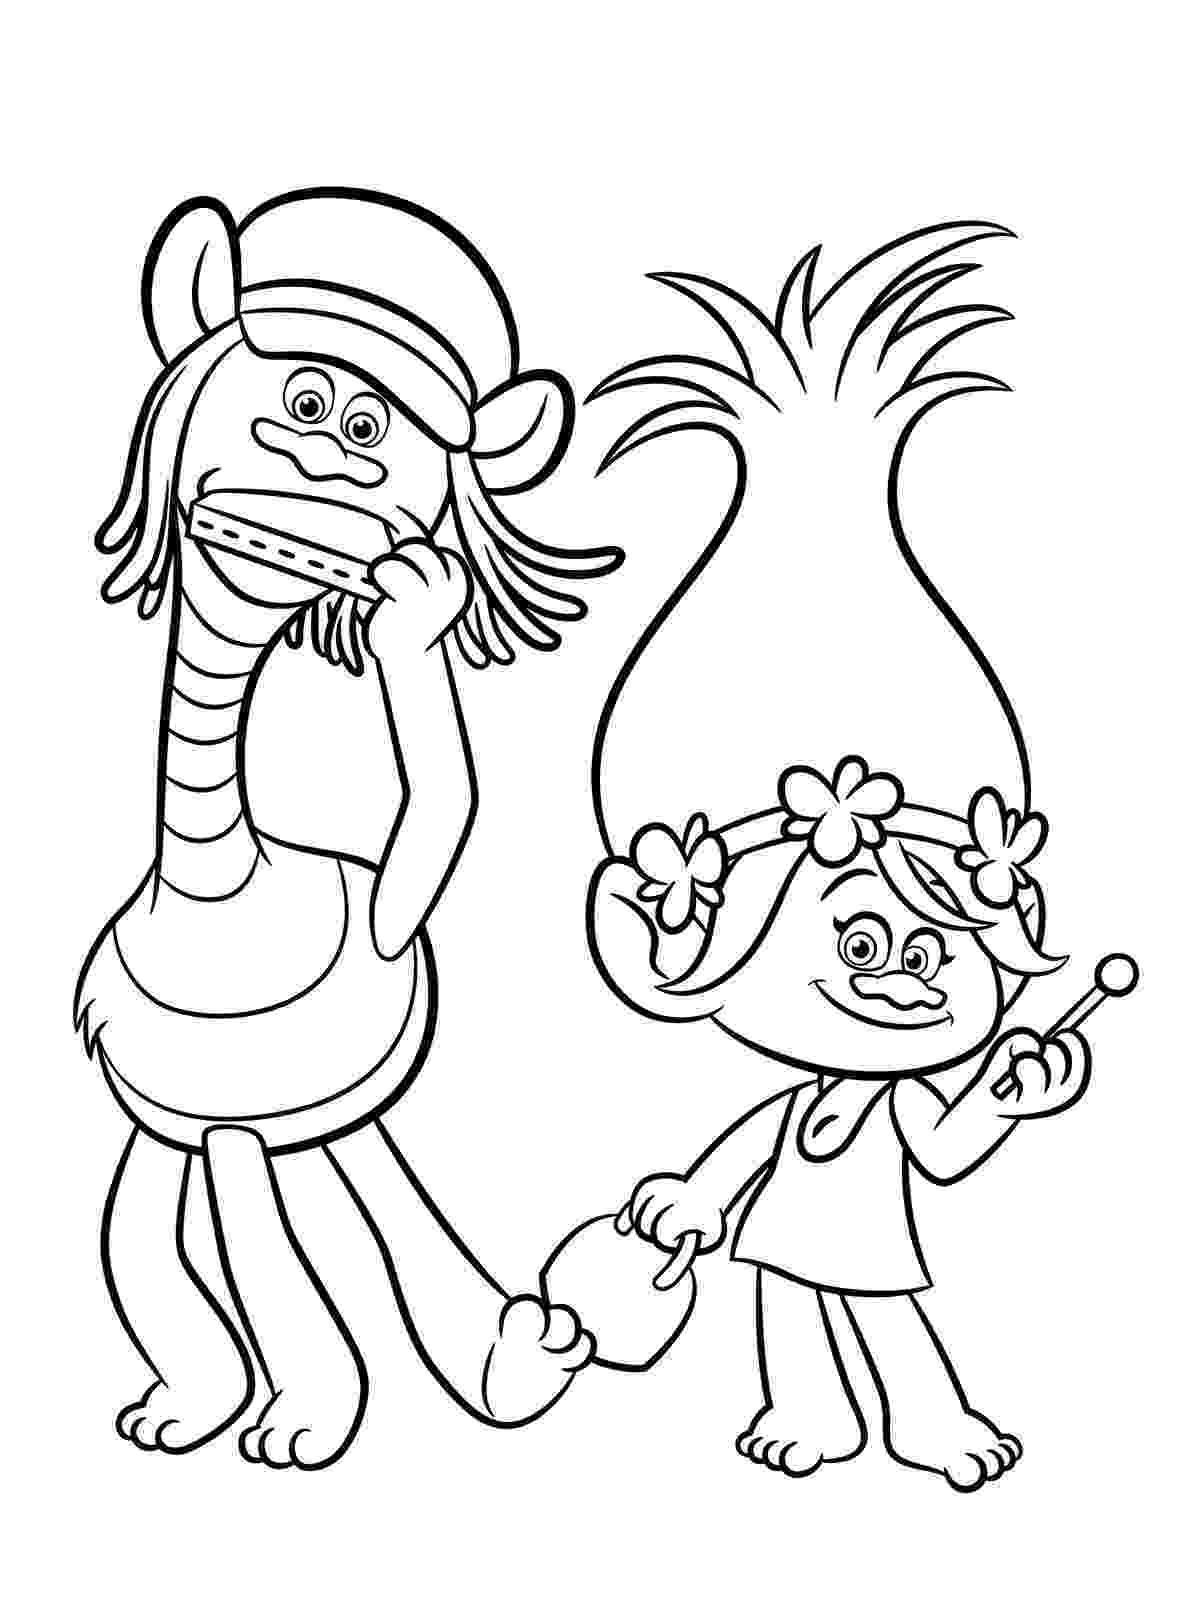 coloring pages disney 14 disney christmas coloring pages picture gtgt disney disney coloring pages